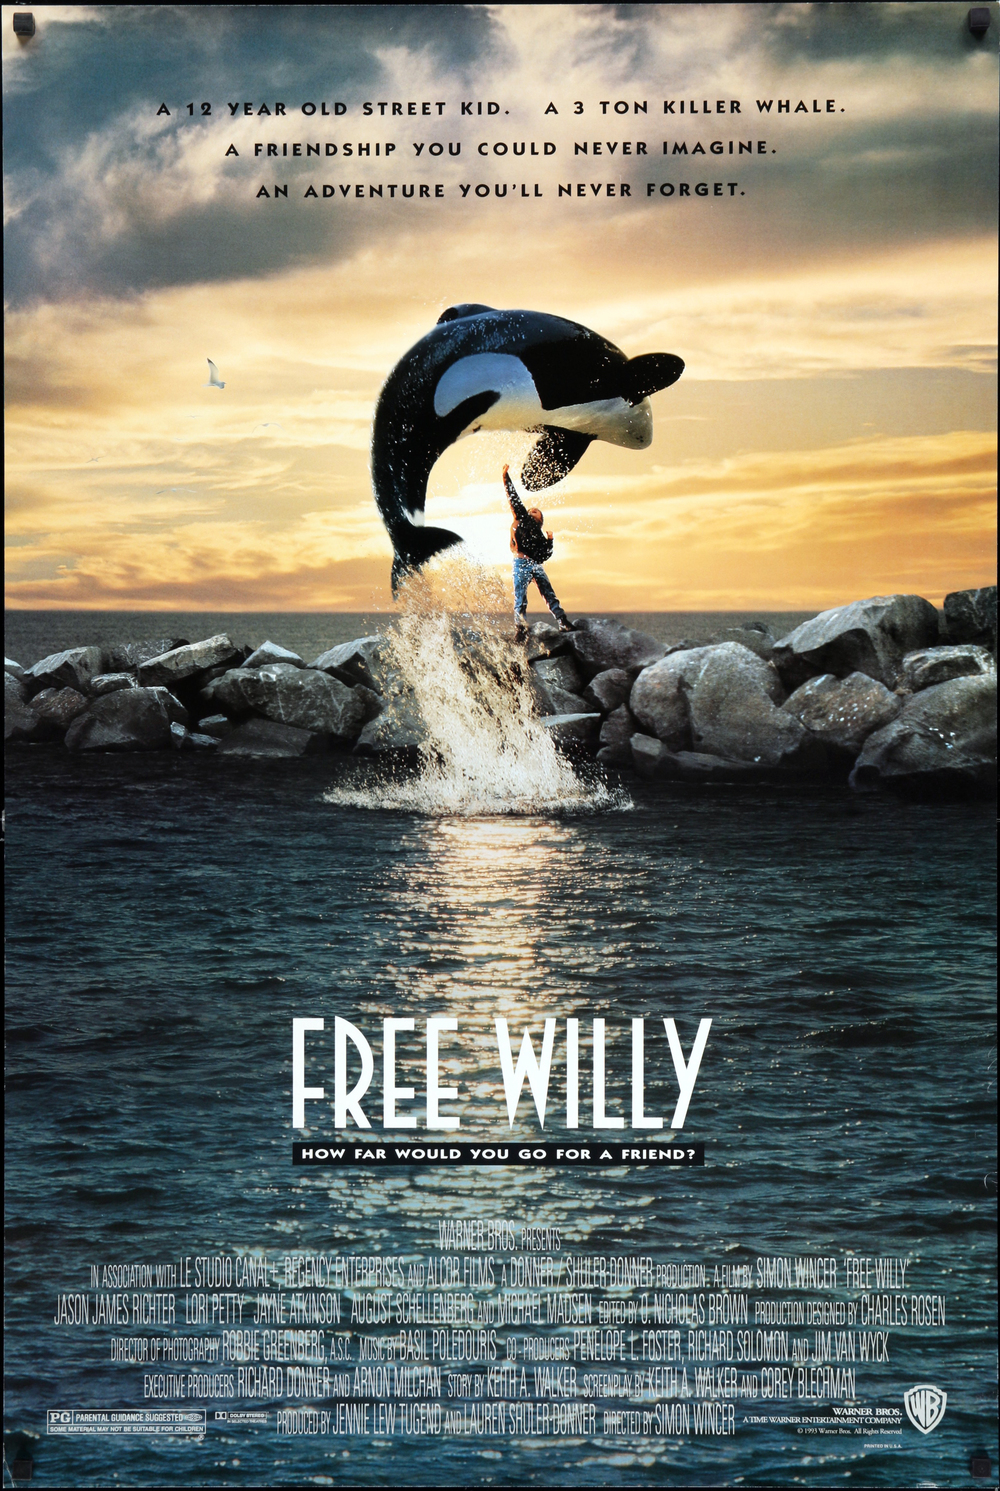 Freewilly1.jpg